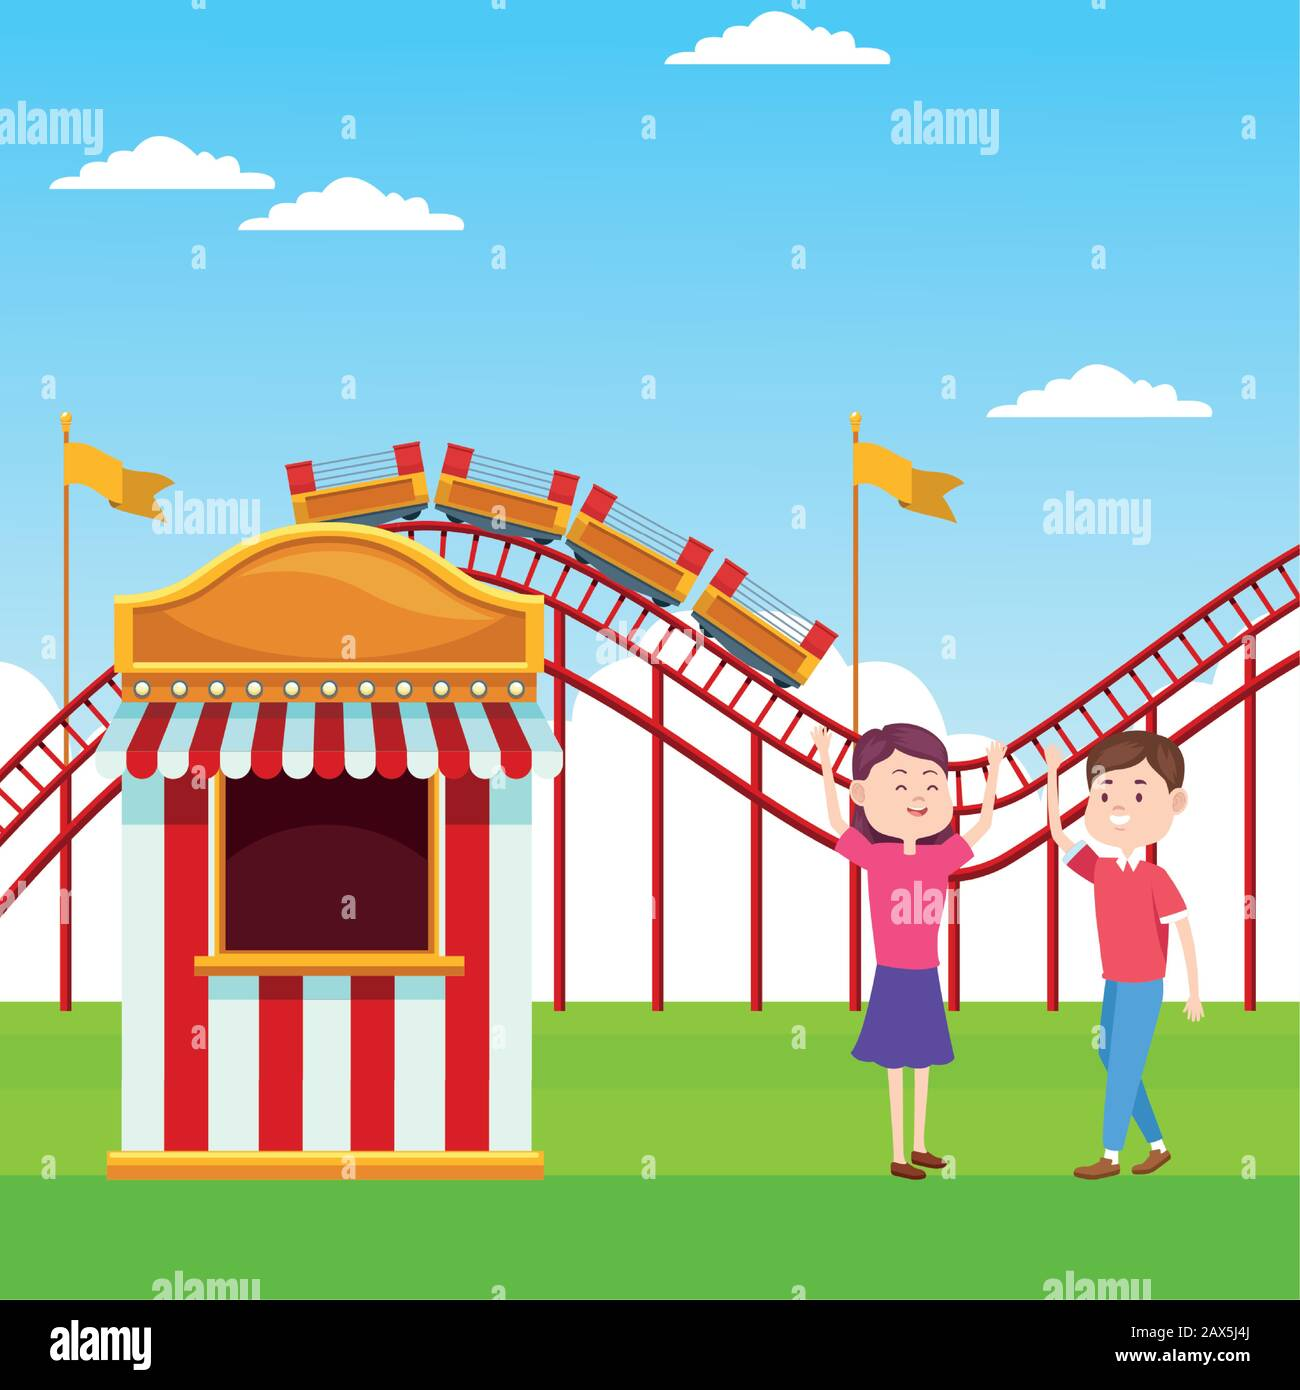 Cartoon Happy Couple In The Fair Next To Ticket Booth Over Roller Coaster And Landscape Background Stock Vector Image Art Alamy